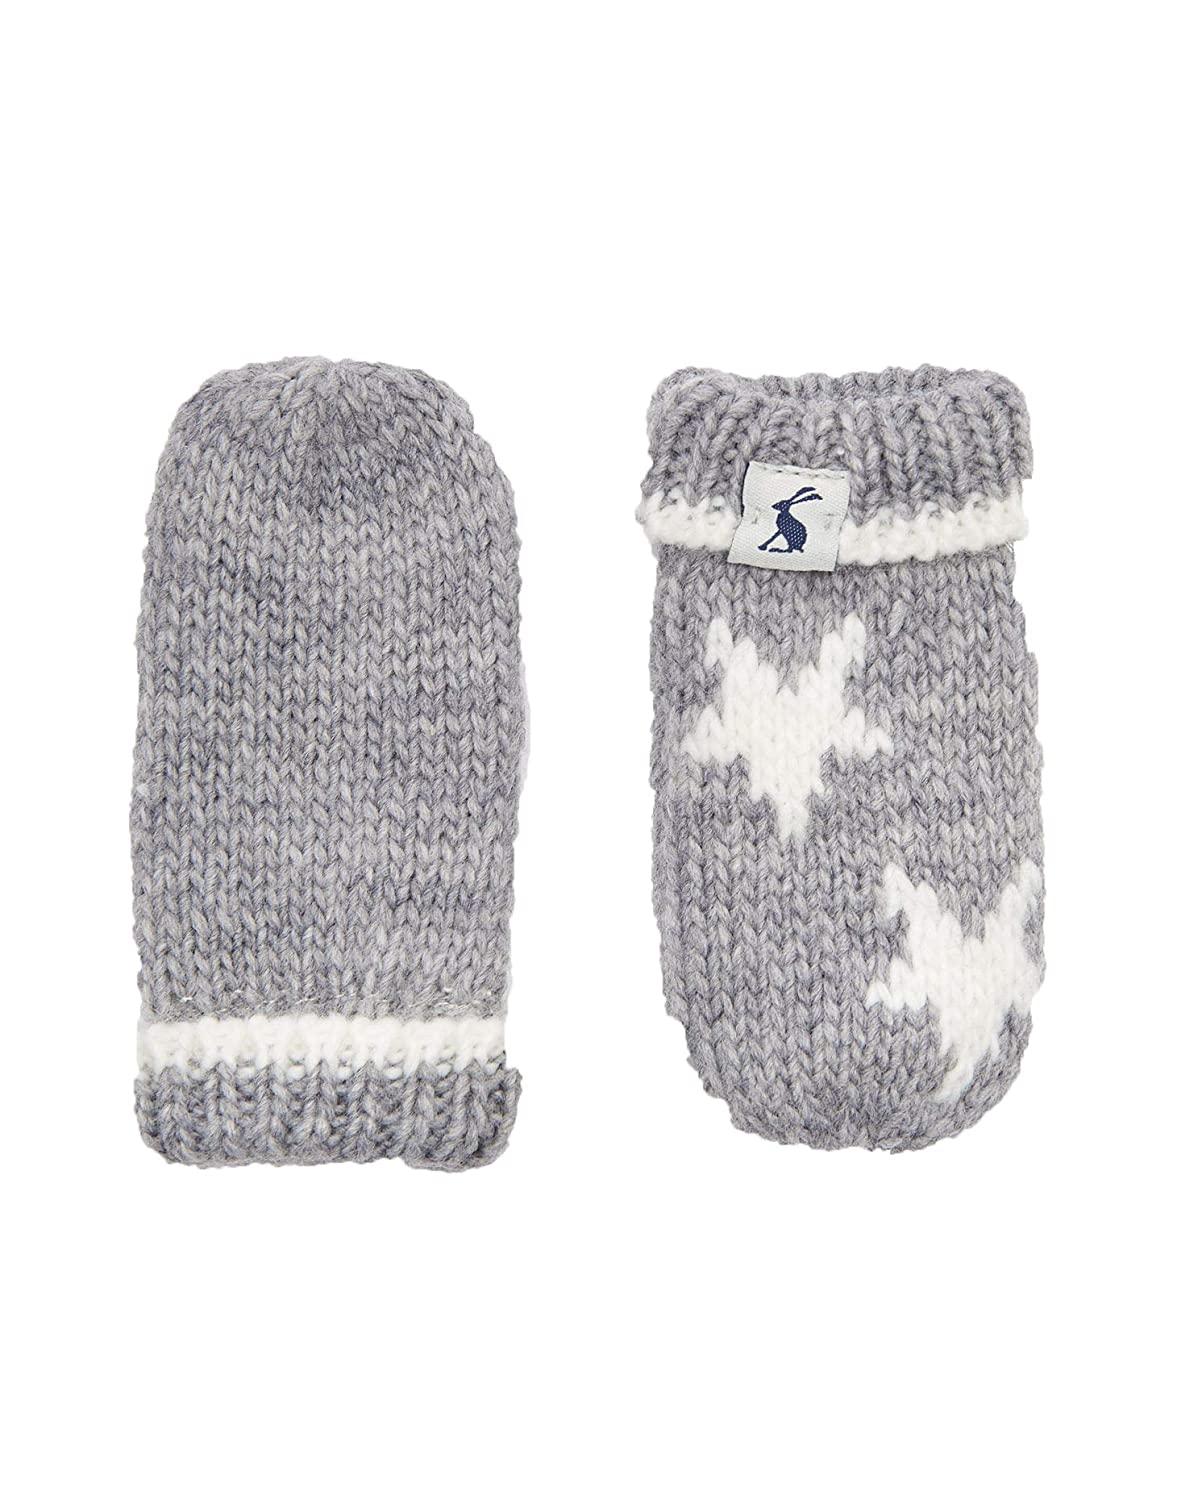 Joules Knitted Mittens - Cream Star